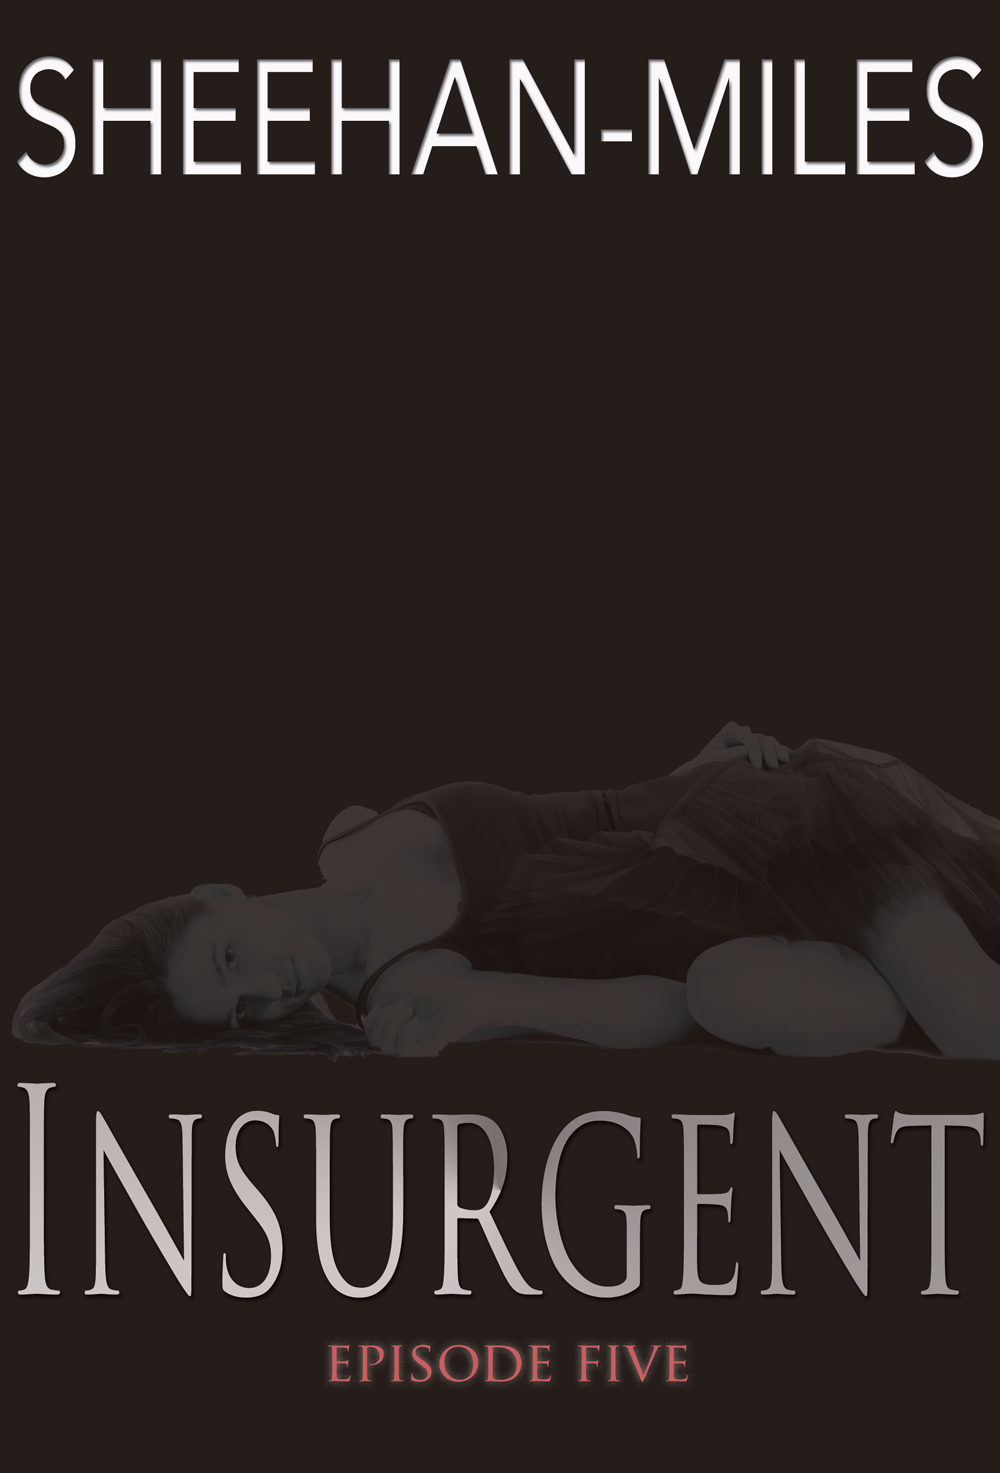 Insurgent (Episode 5) now complete